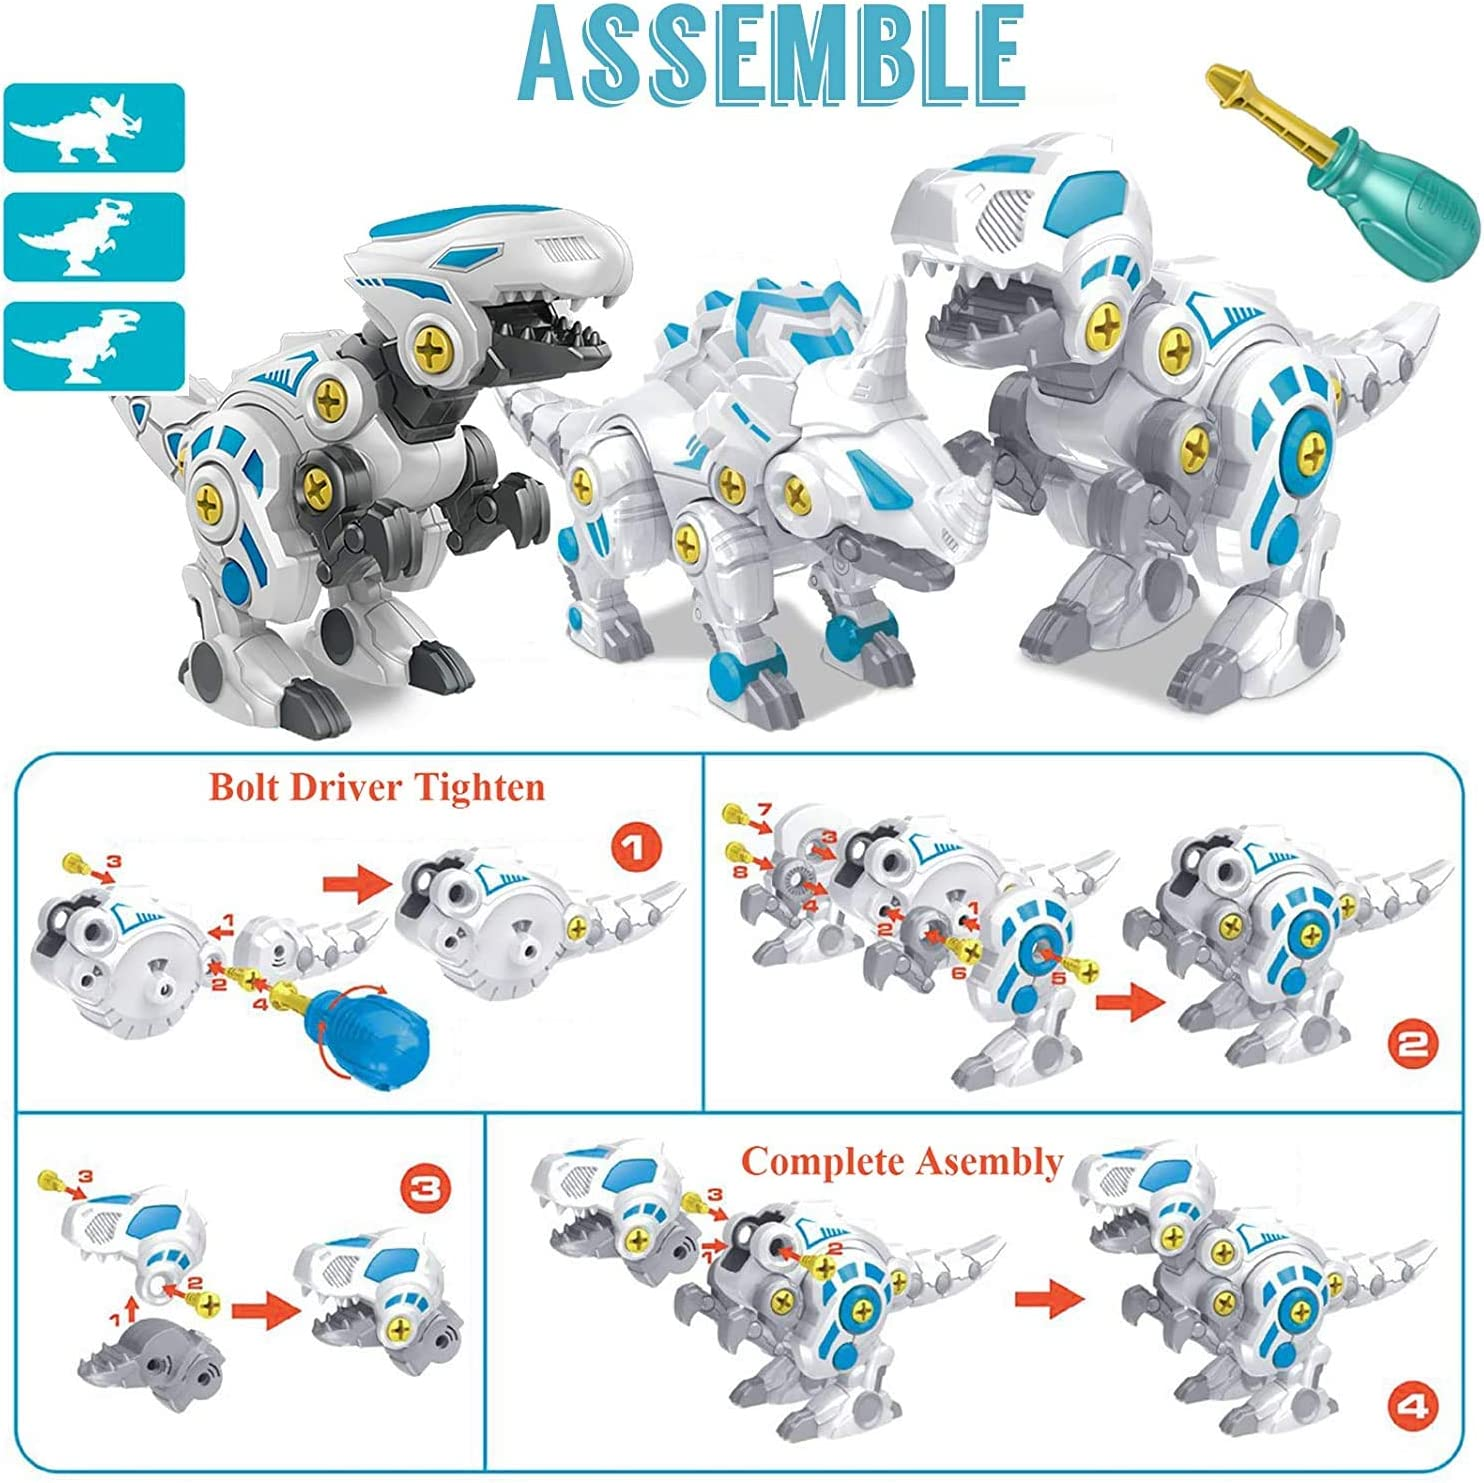 3 Pack DIY STEM Toys Building Learning Gifts Set with Screwdrivers for Kids 3-7 Years Old TEUVO Big Take/Apart/Dinosaur/Toys for Boys